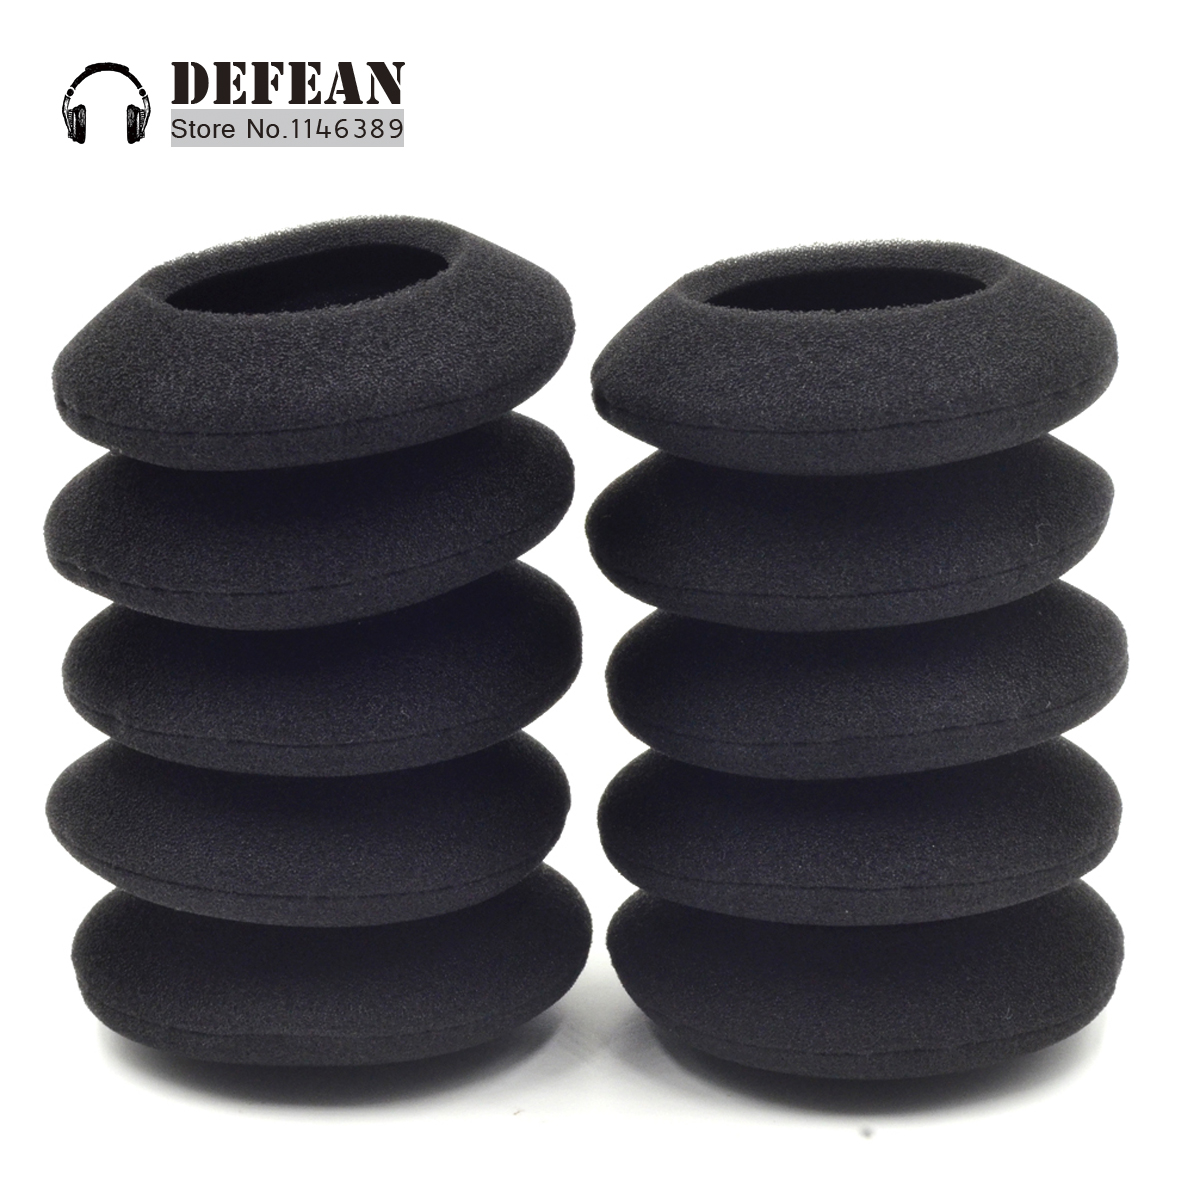 10X cushion ear pad foam for px100 px200 px300 px100II px200II pmx100 headphones